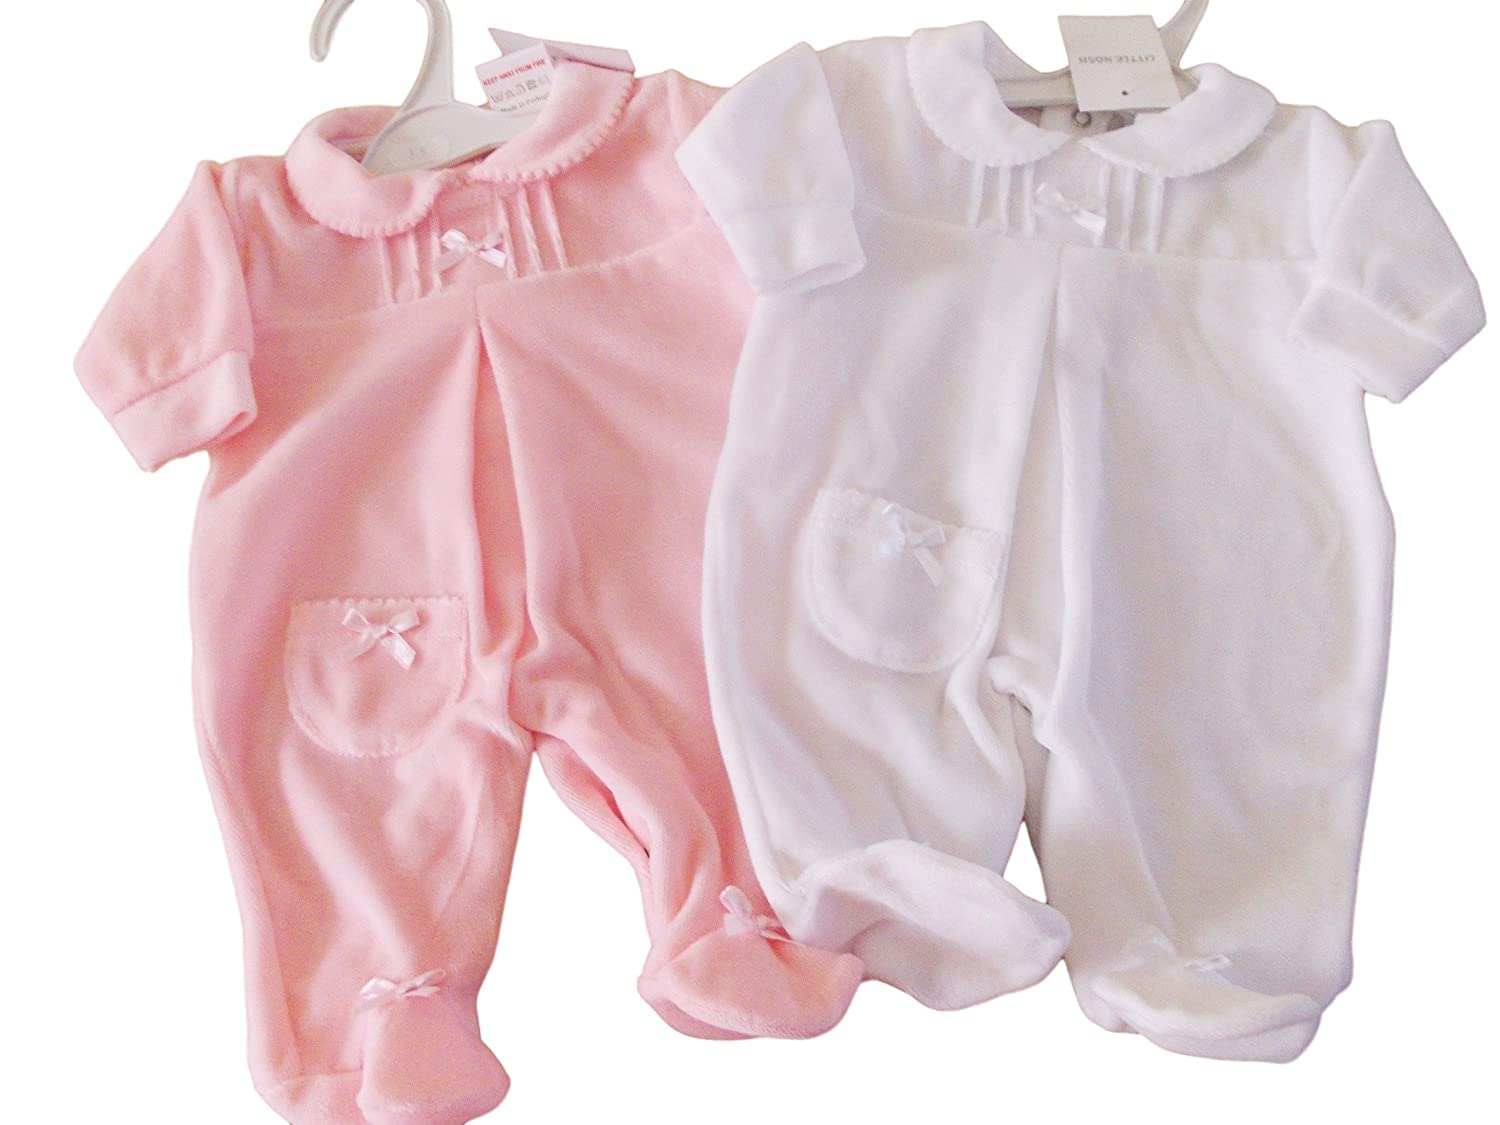 f2a17f4f9 BNWT Exclusive to Kiddiewinks Premature Preemie Baby girls velour ...